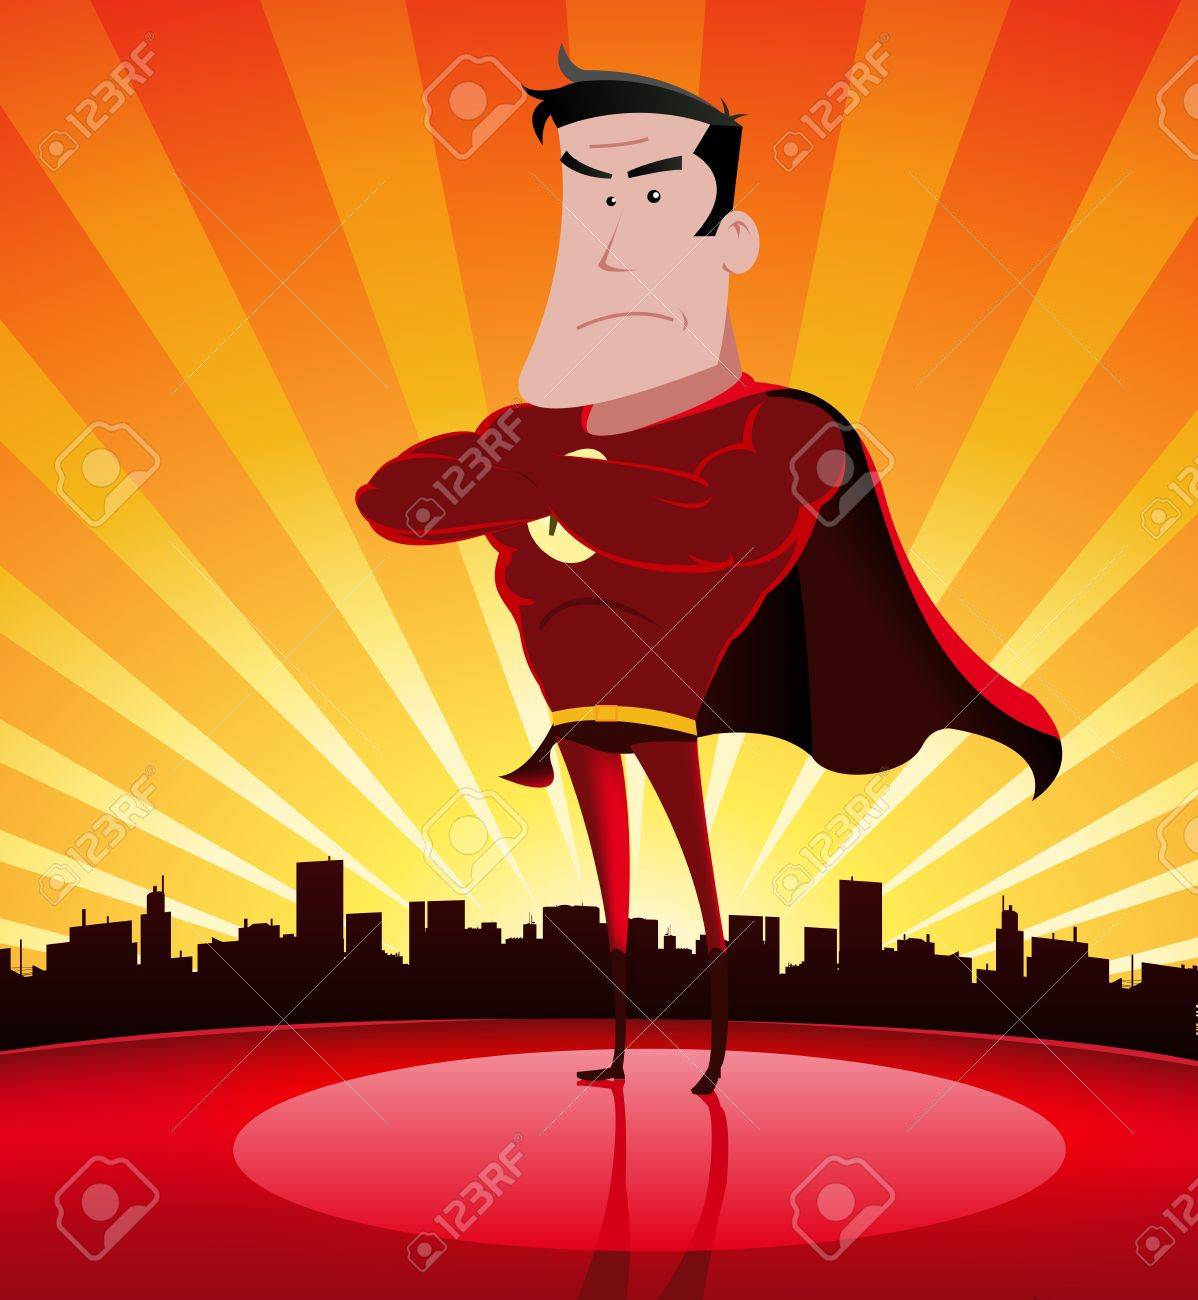 Illustration of a cartoon  hero standing proudly with cityscape behind Stock Vector - 11248944